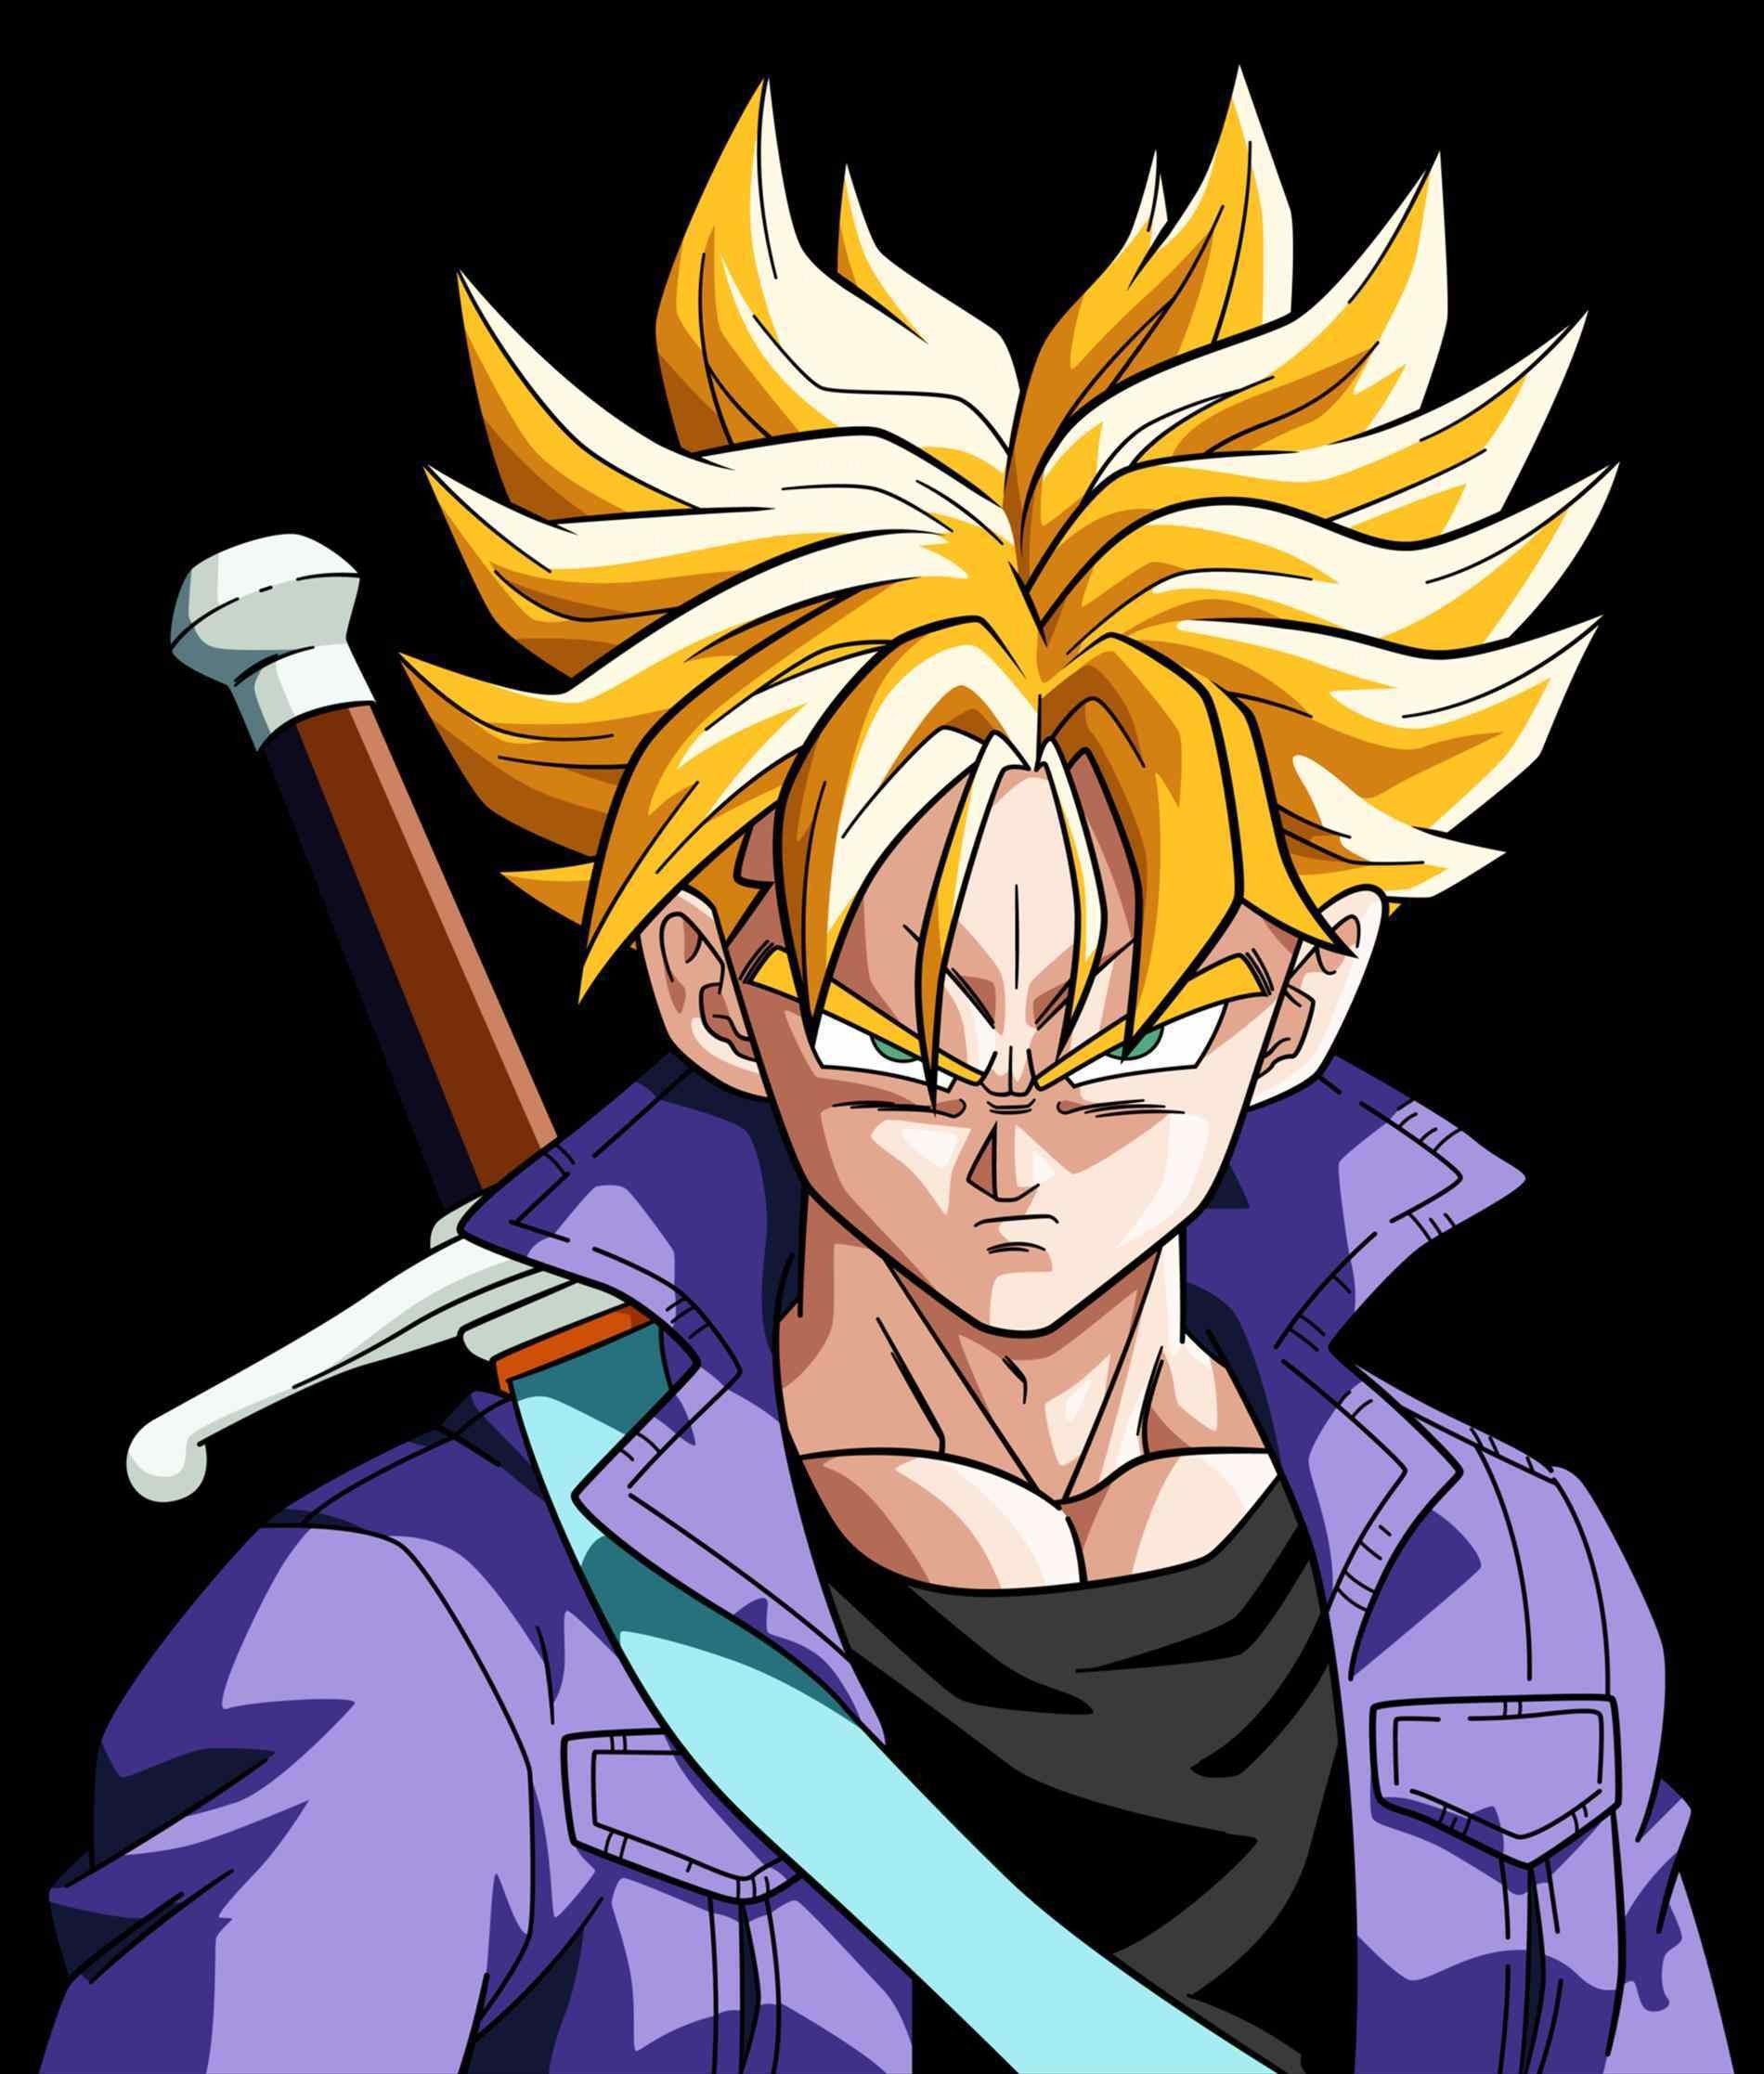 Dbz Trunks Wallpaper 72 Images